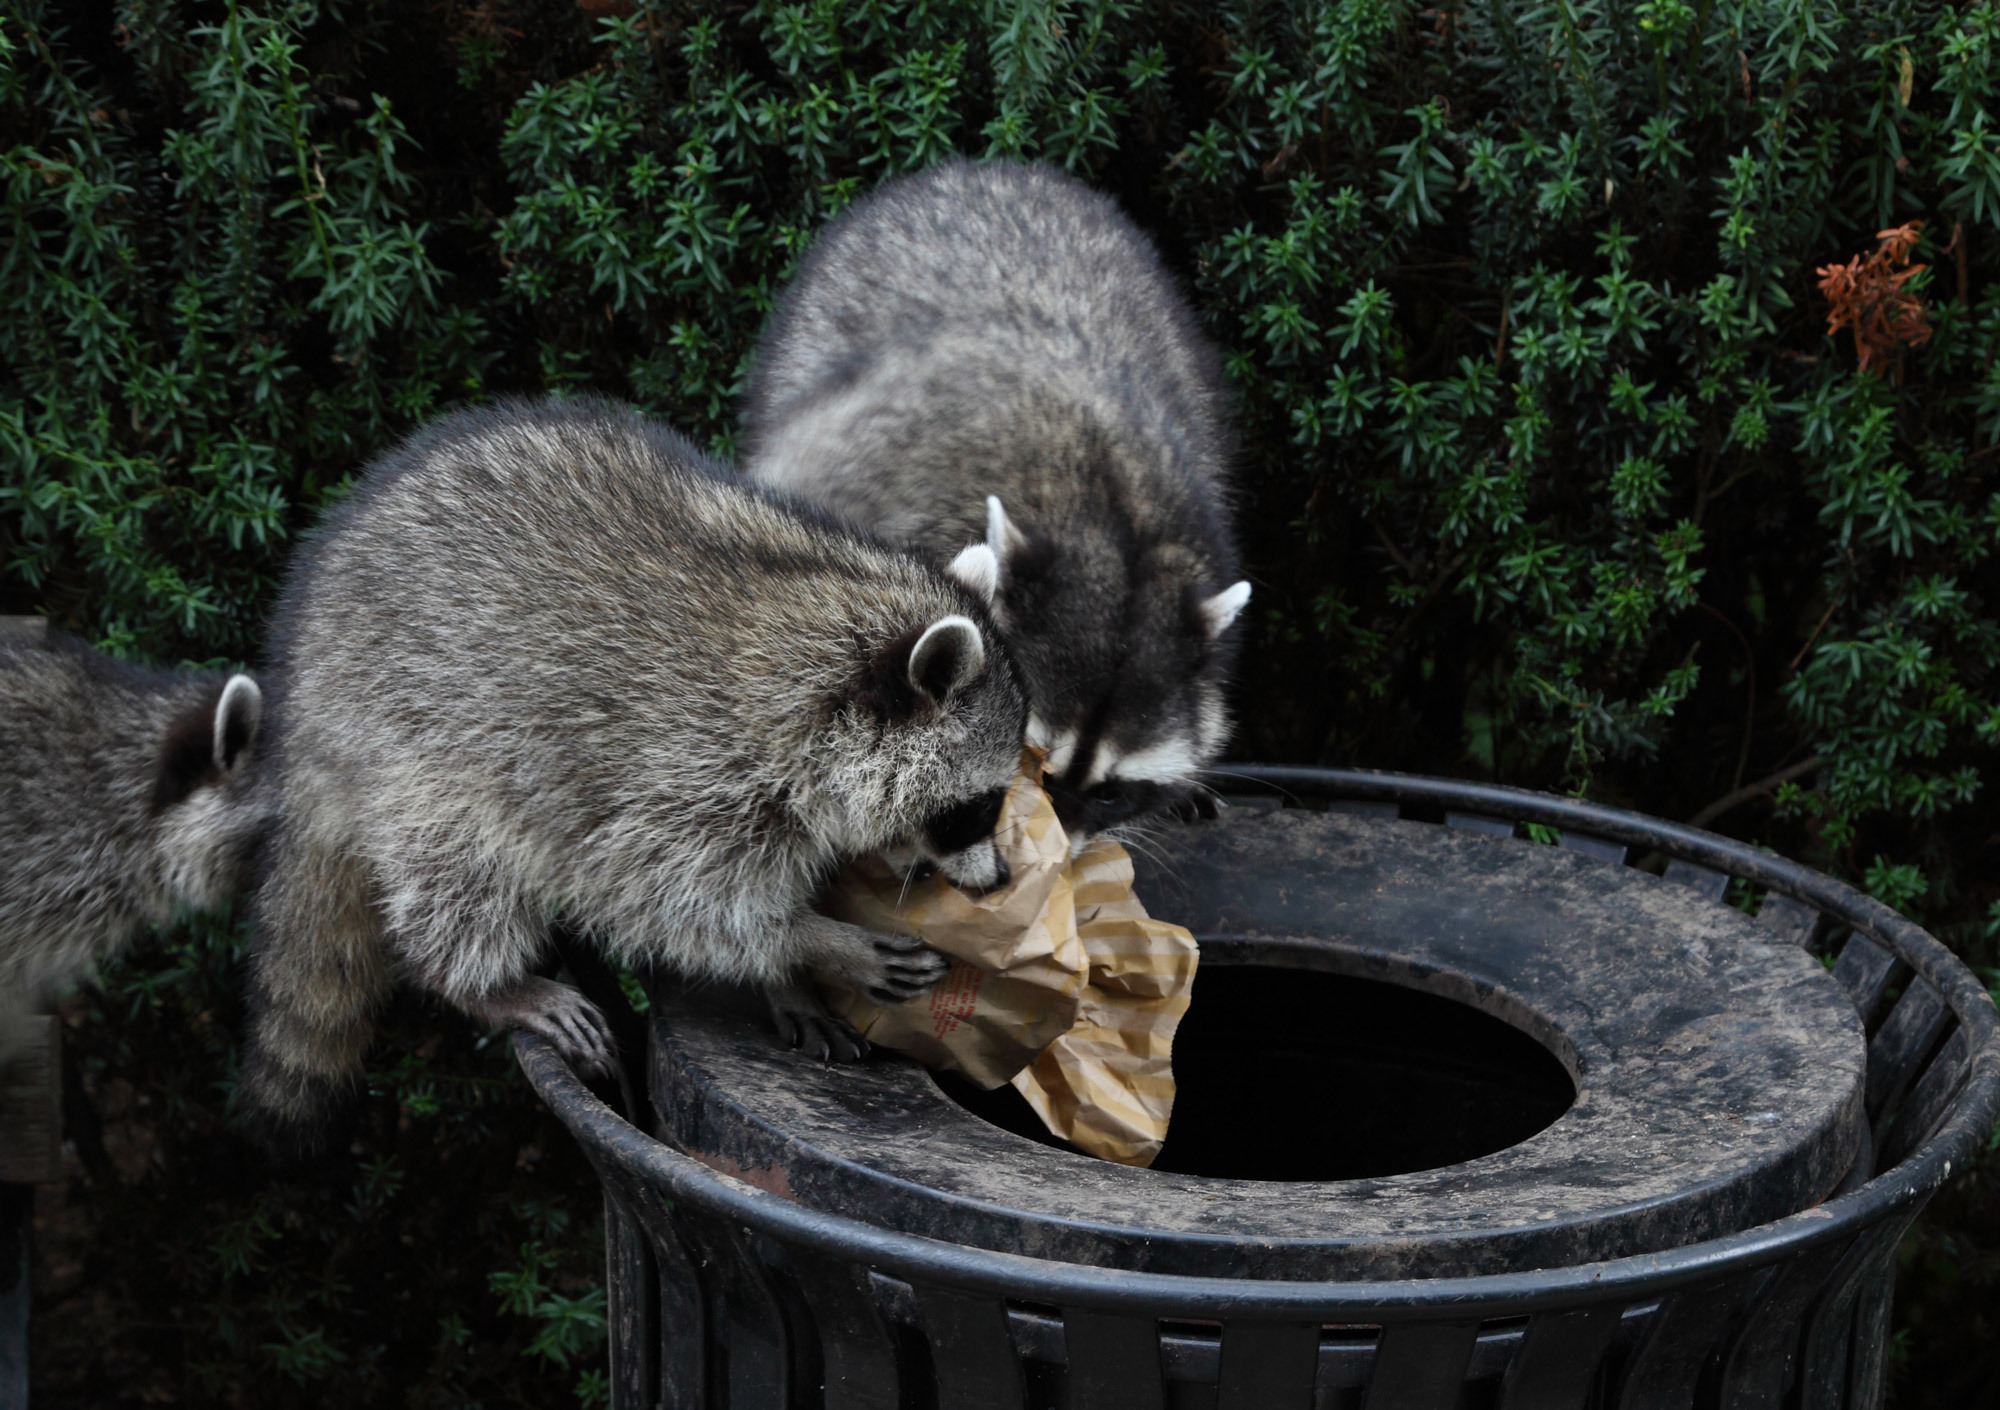 Nuisance racoon removal in St. Charles